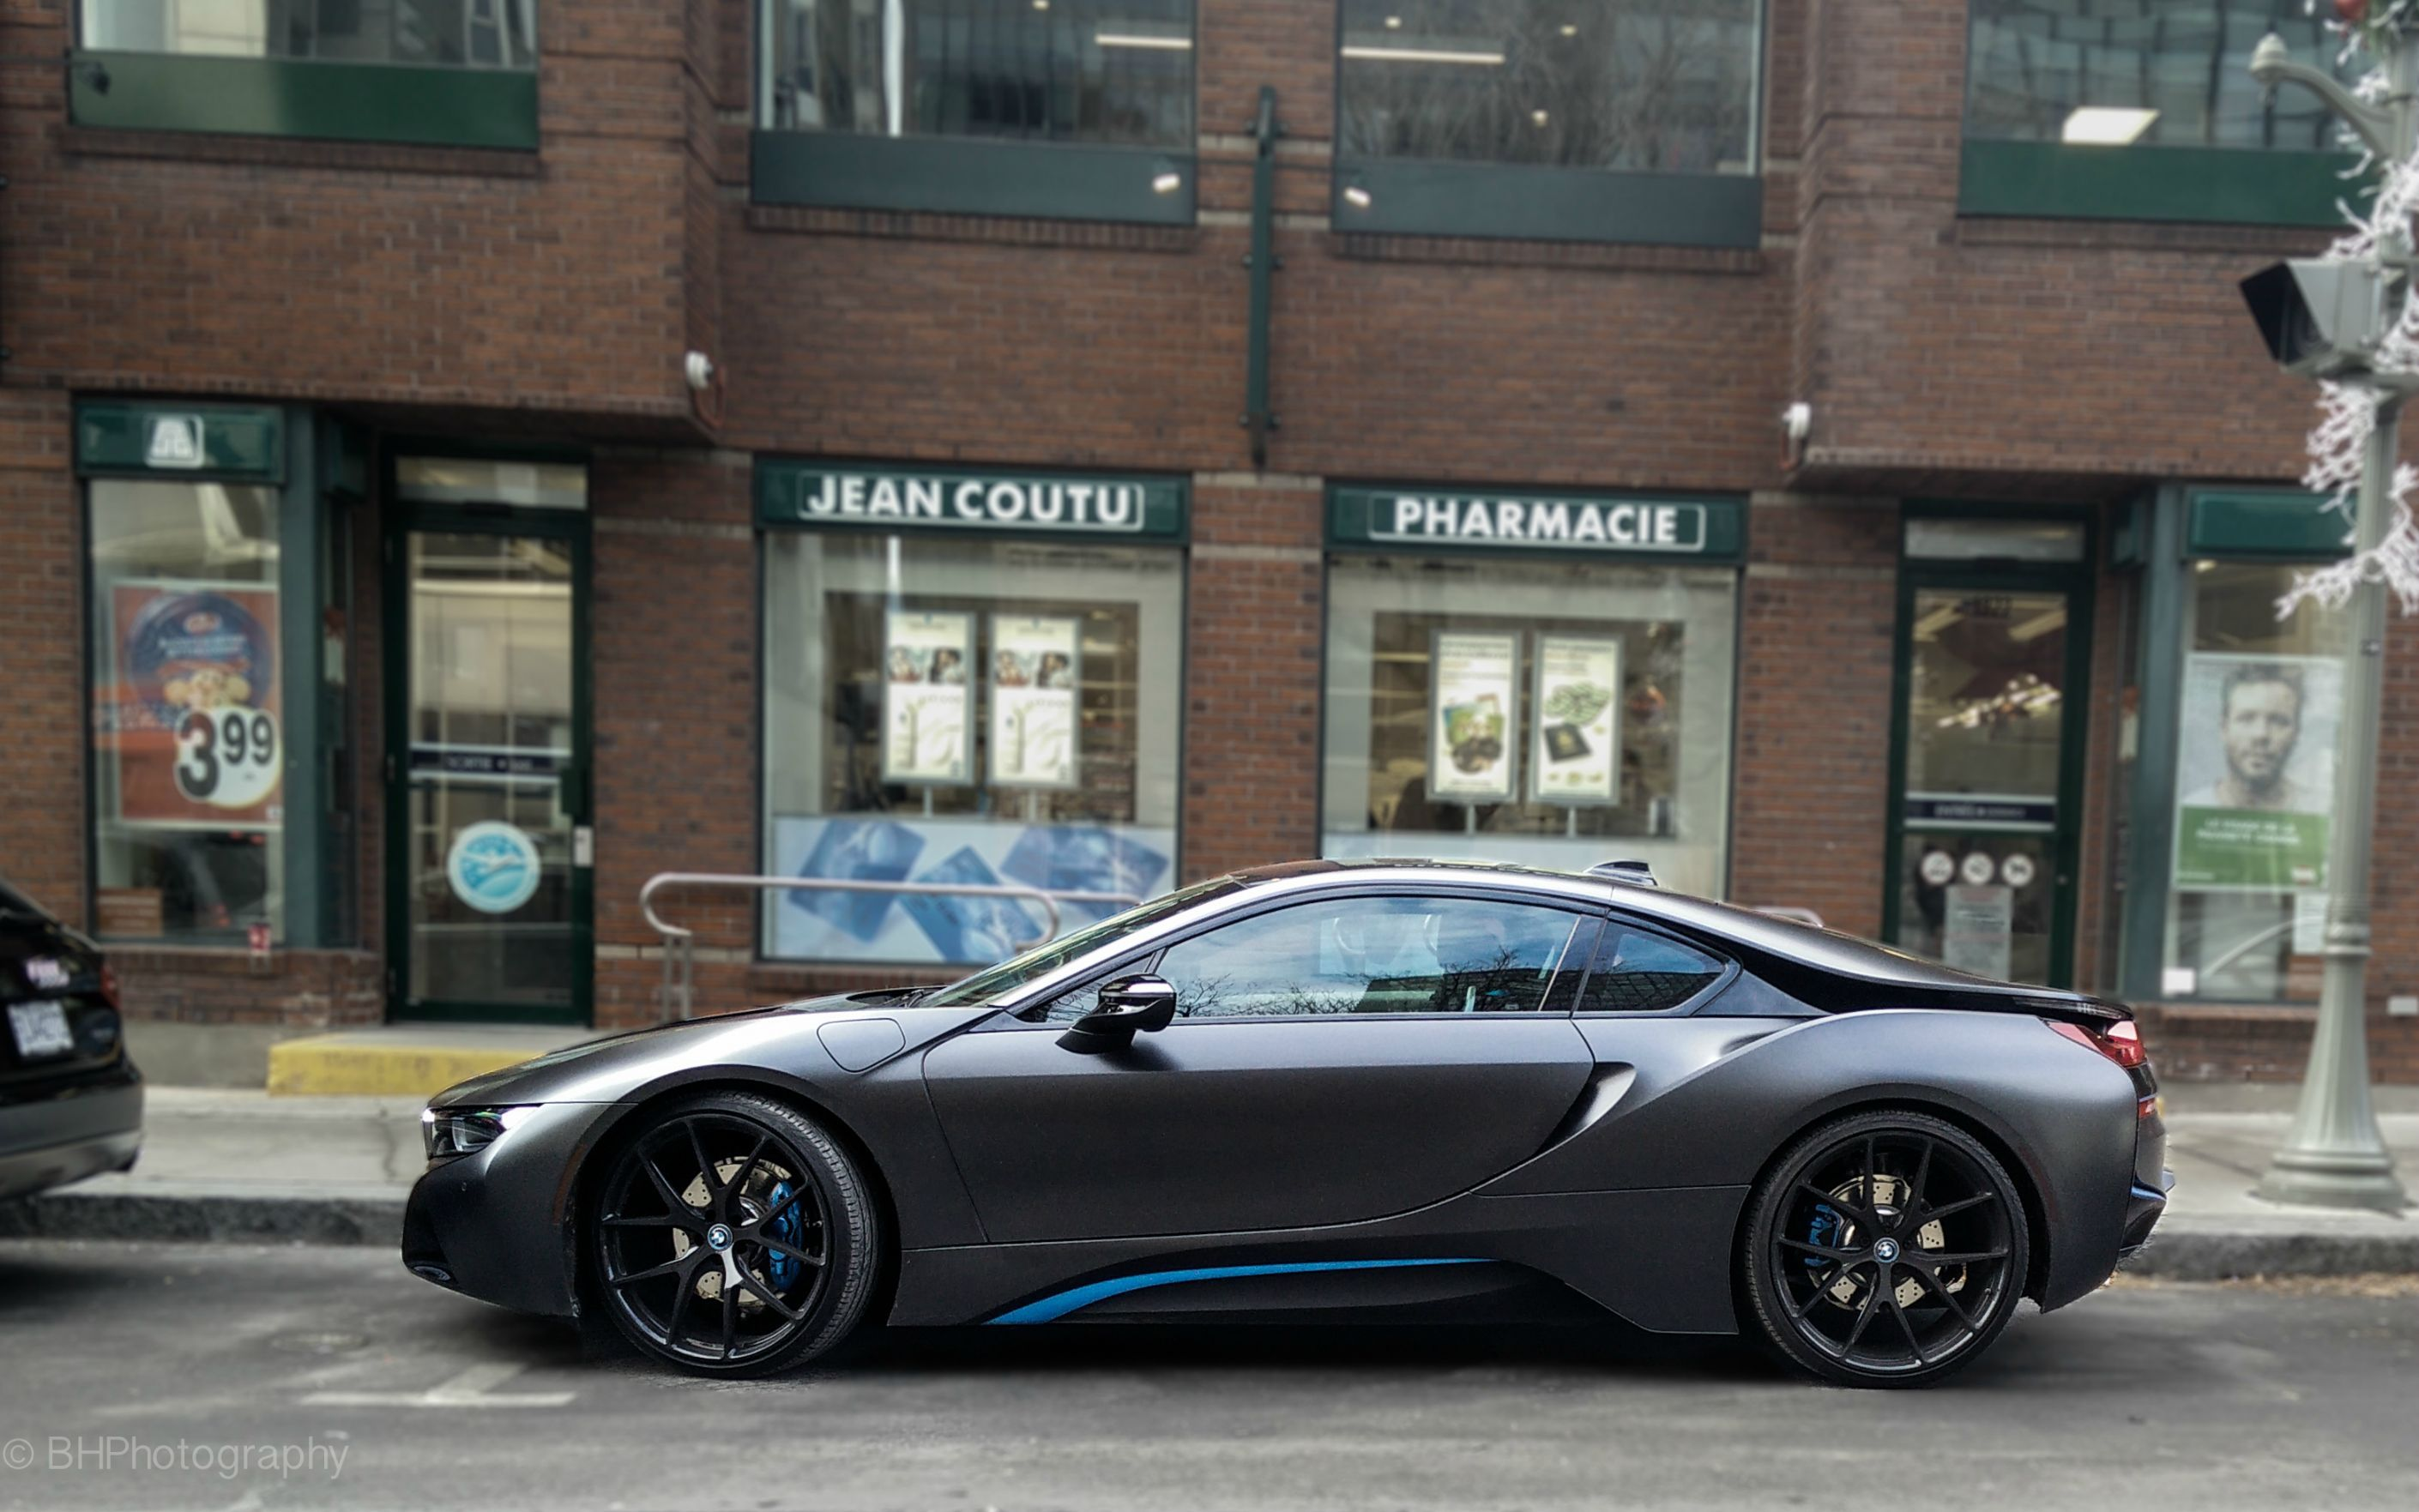 Matte Black BMW I8 [2820x1763] [OC] Home Design Ideas